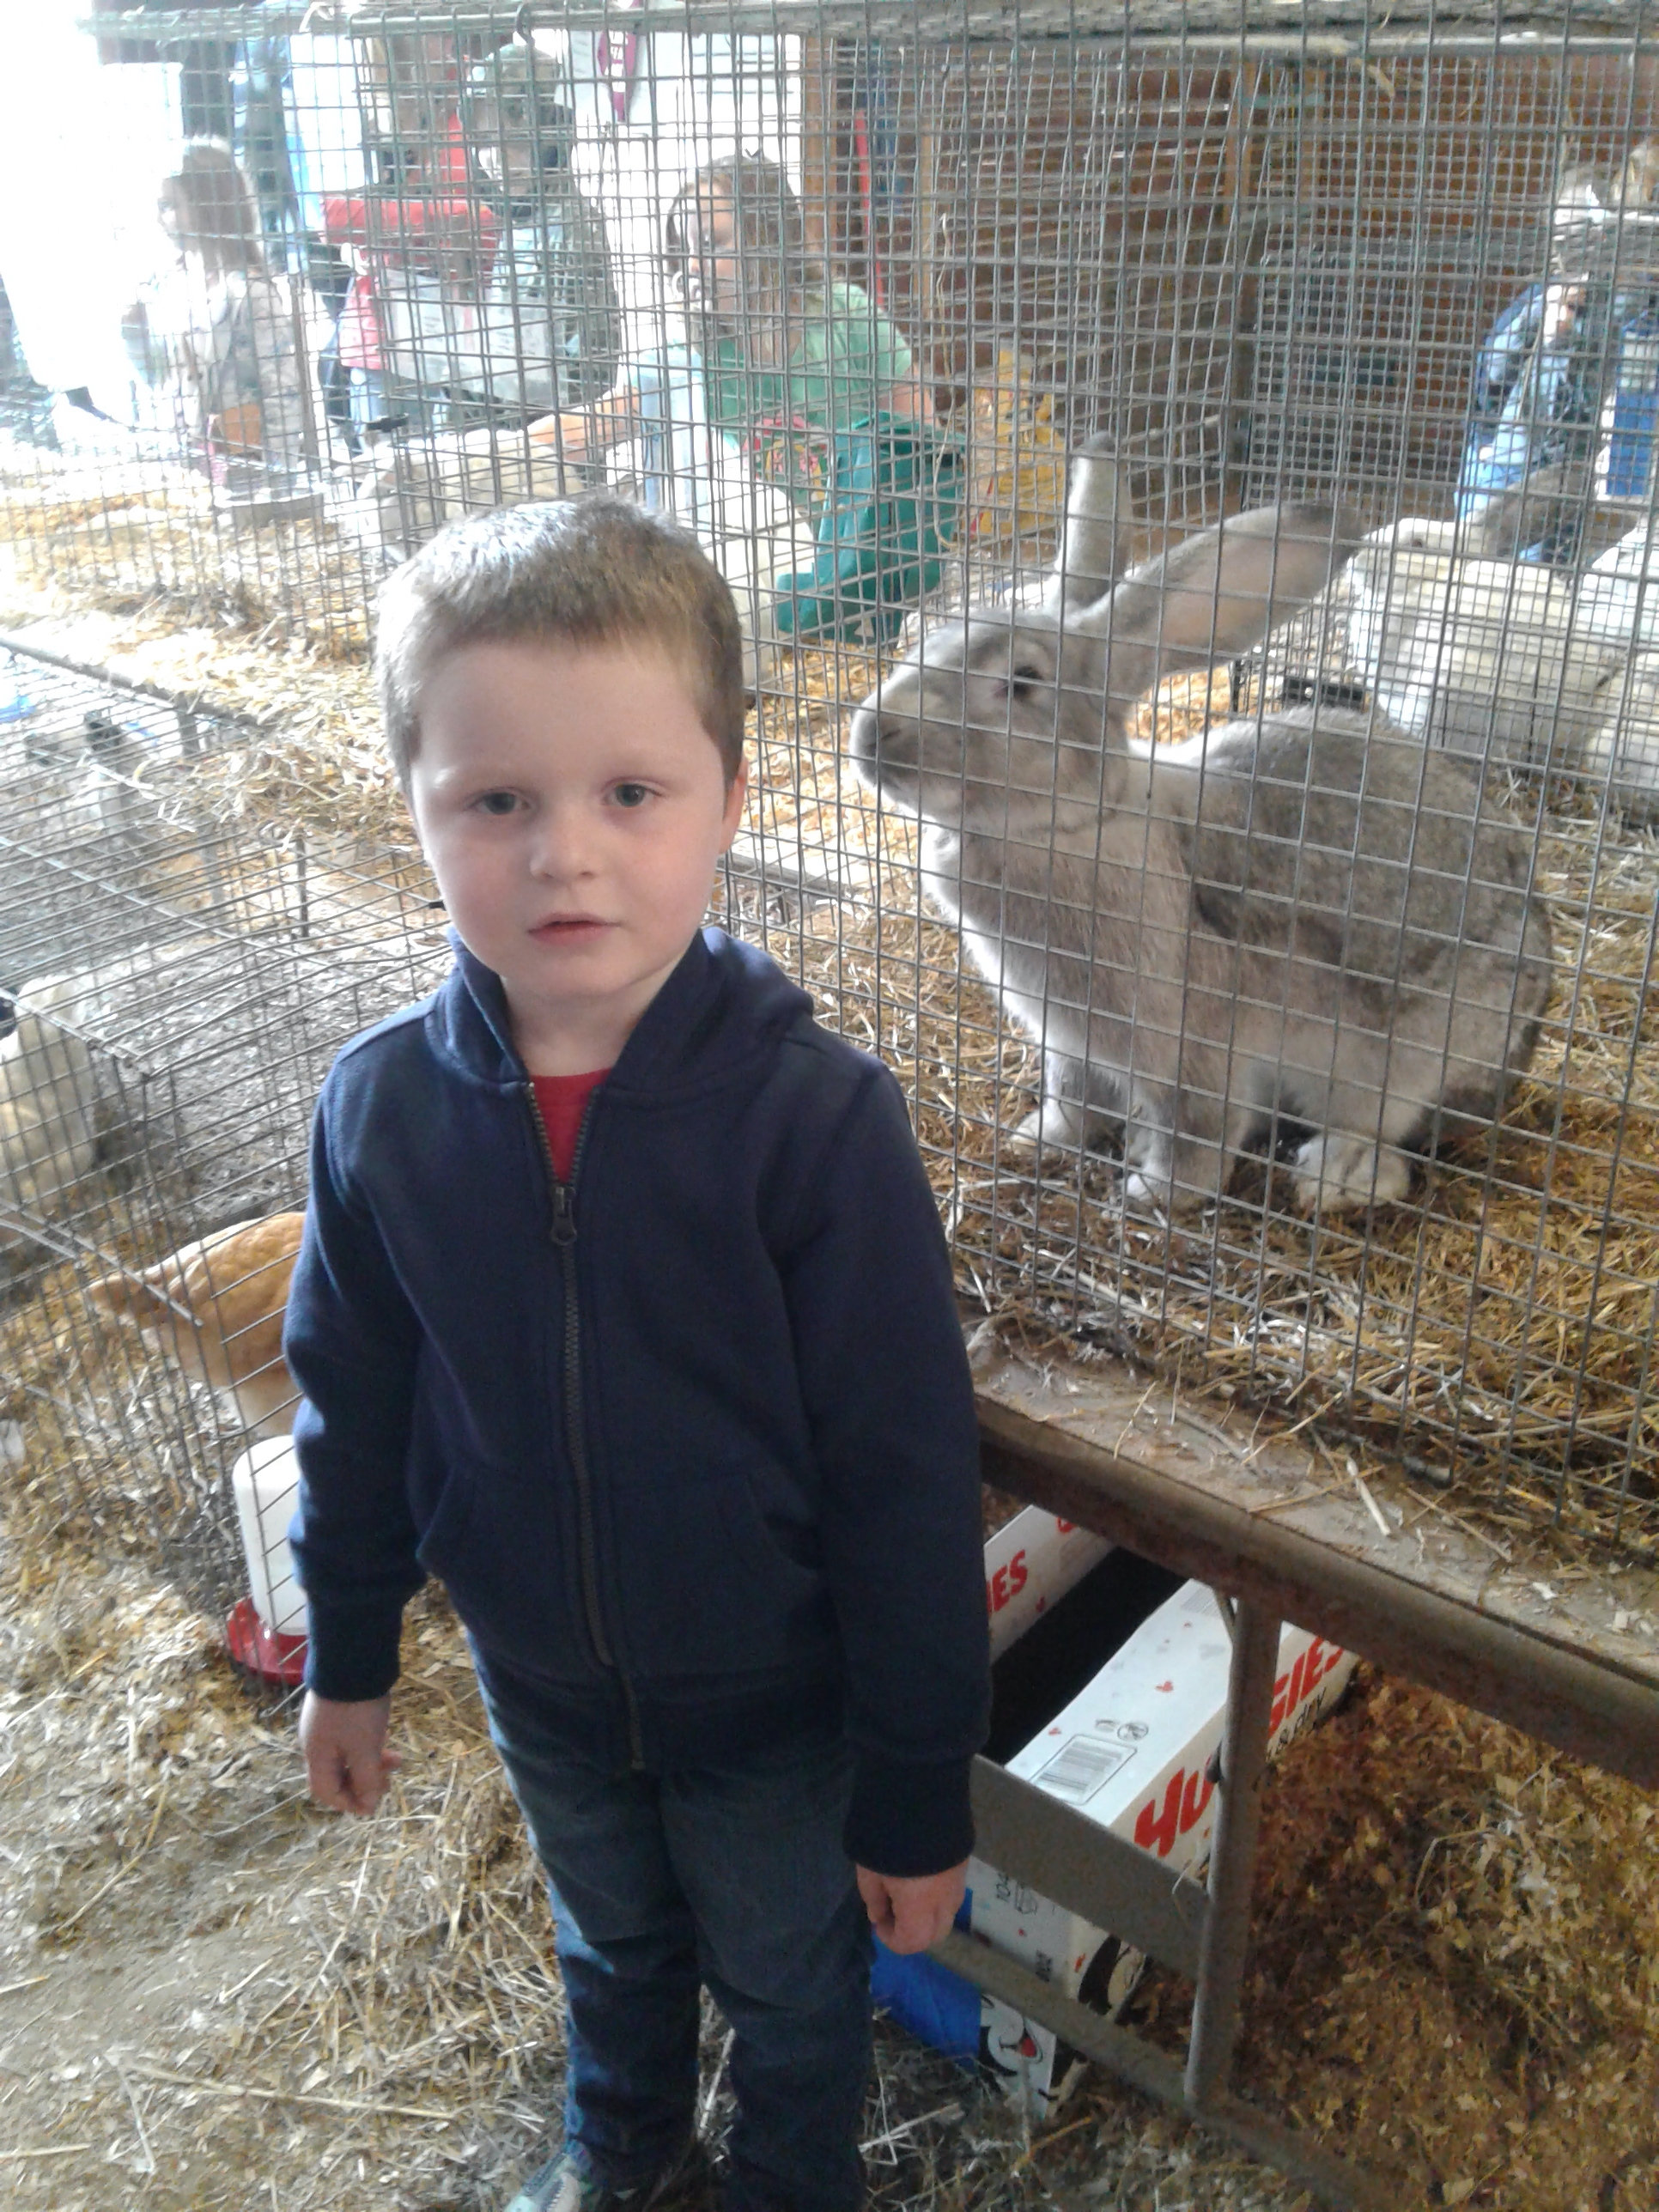 <strong>Visiting the small animals exhibit on display at the Pine Plains FFA Ag Fair, Shea Cordella, 4, posed in front of a very friendly Flemish giant.<em>Photo by Kaitlin Lyle</em></strong>